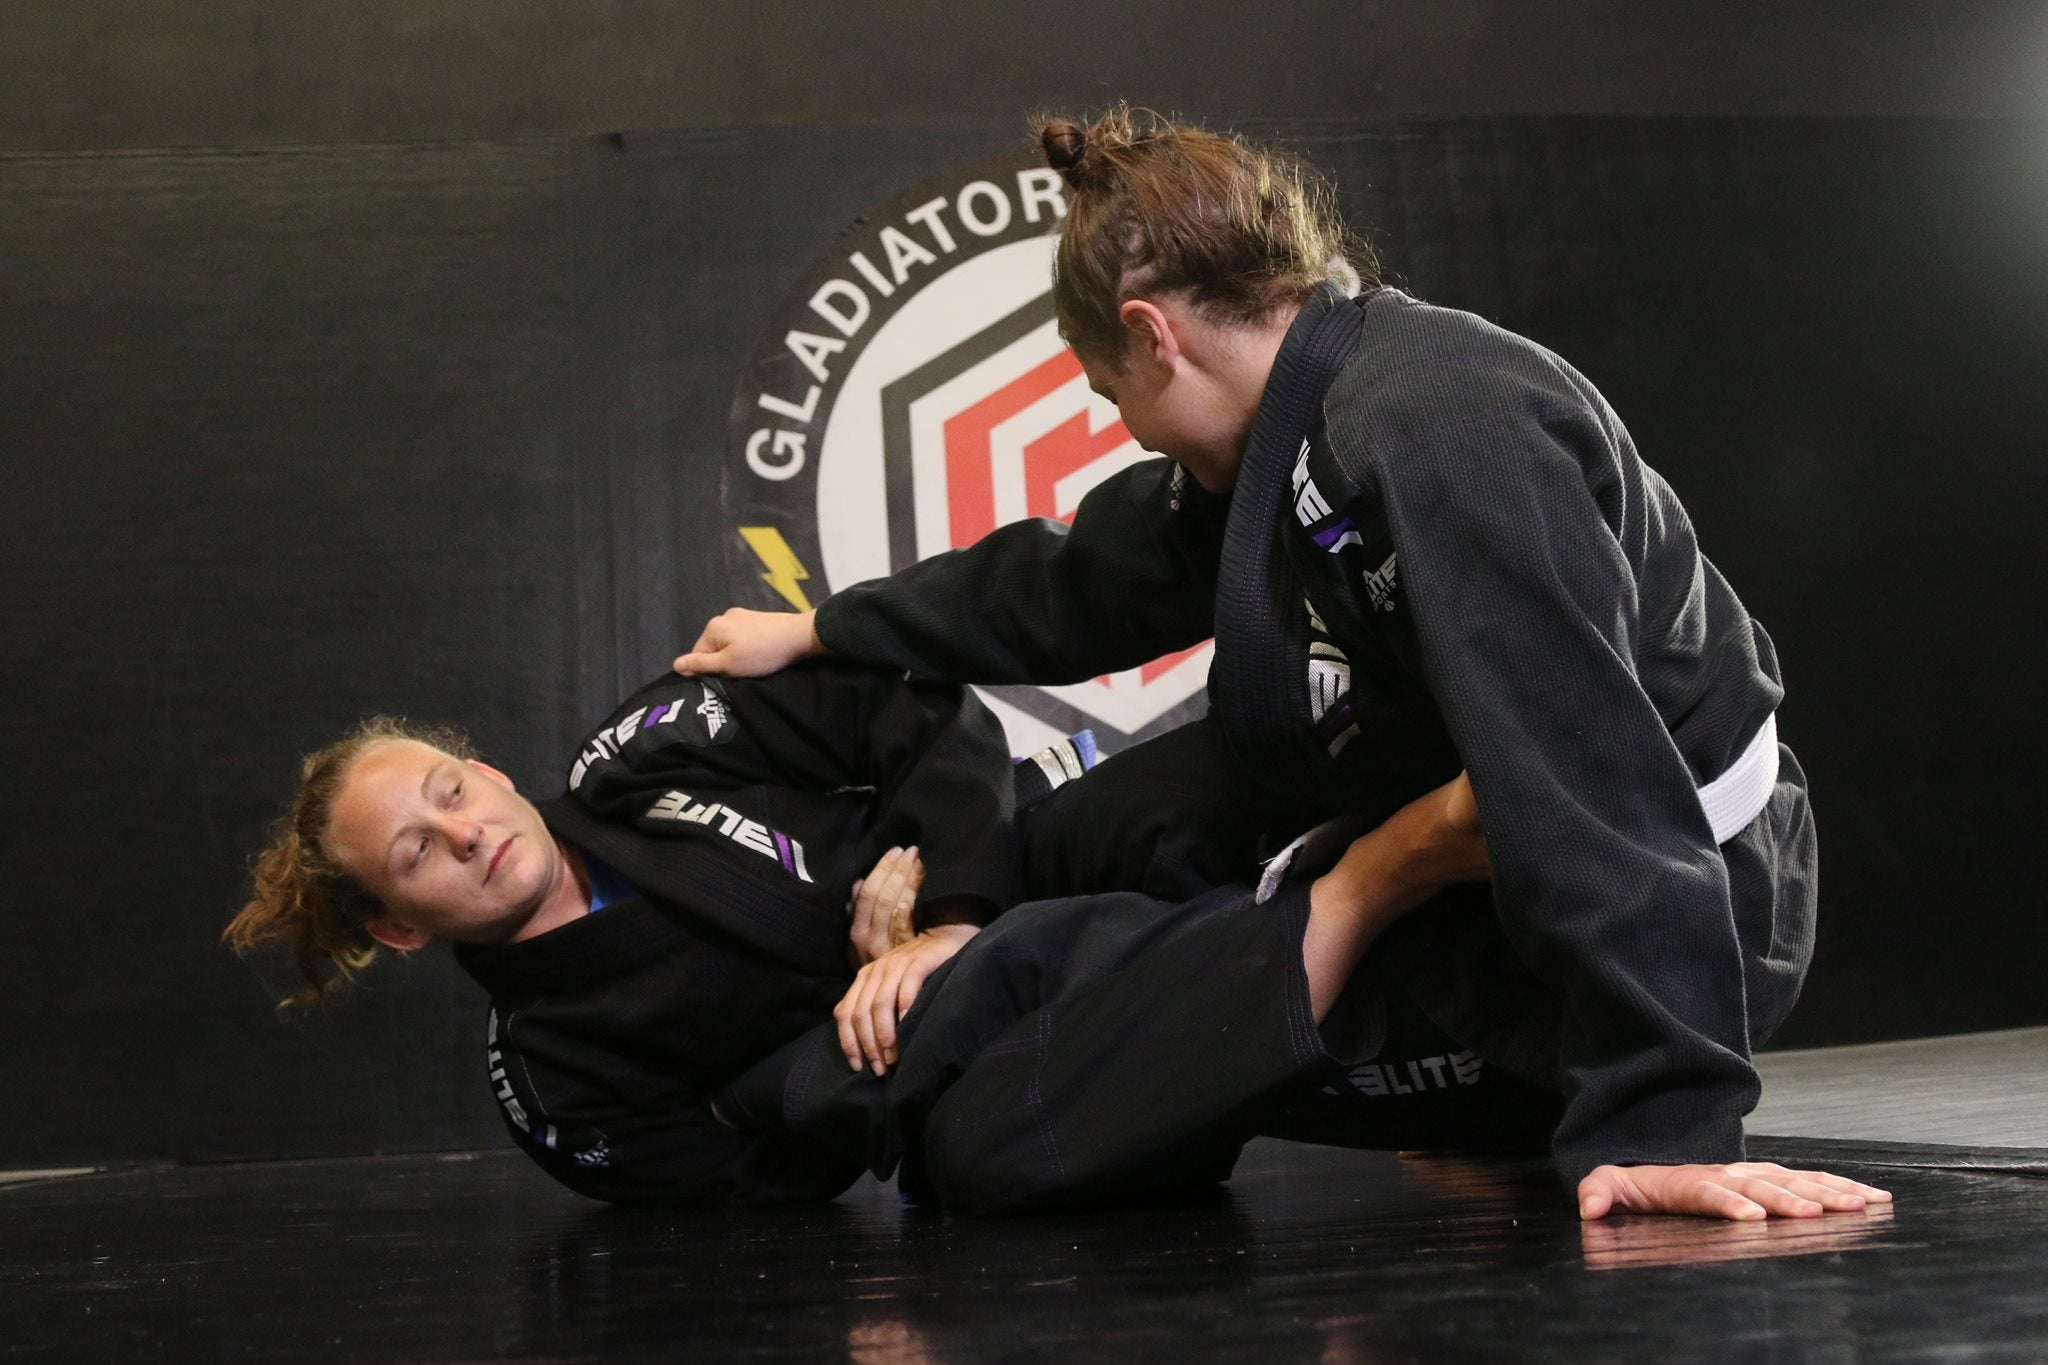 Elite Sports Team Elite Bjj Fighter Aimee Olds   Image5